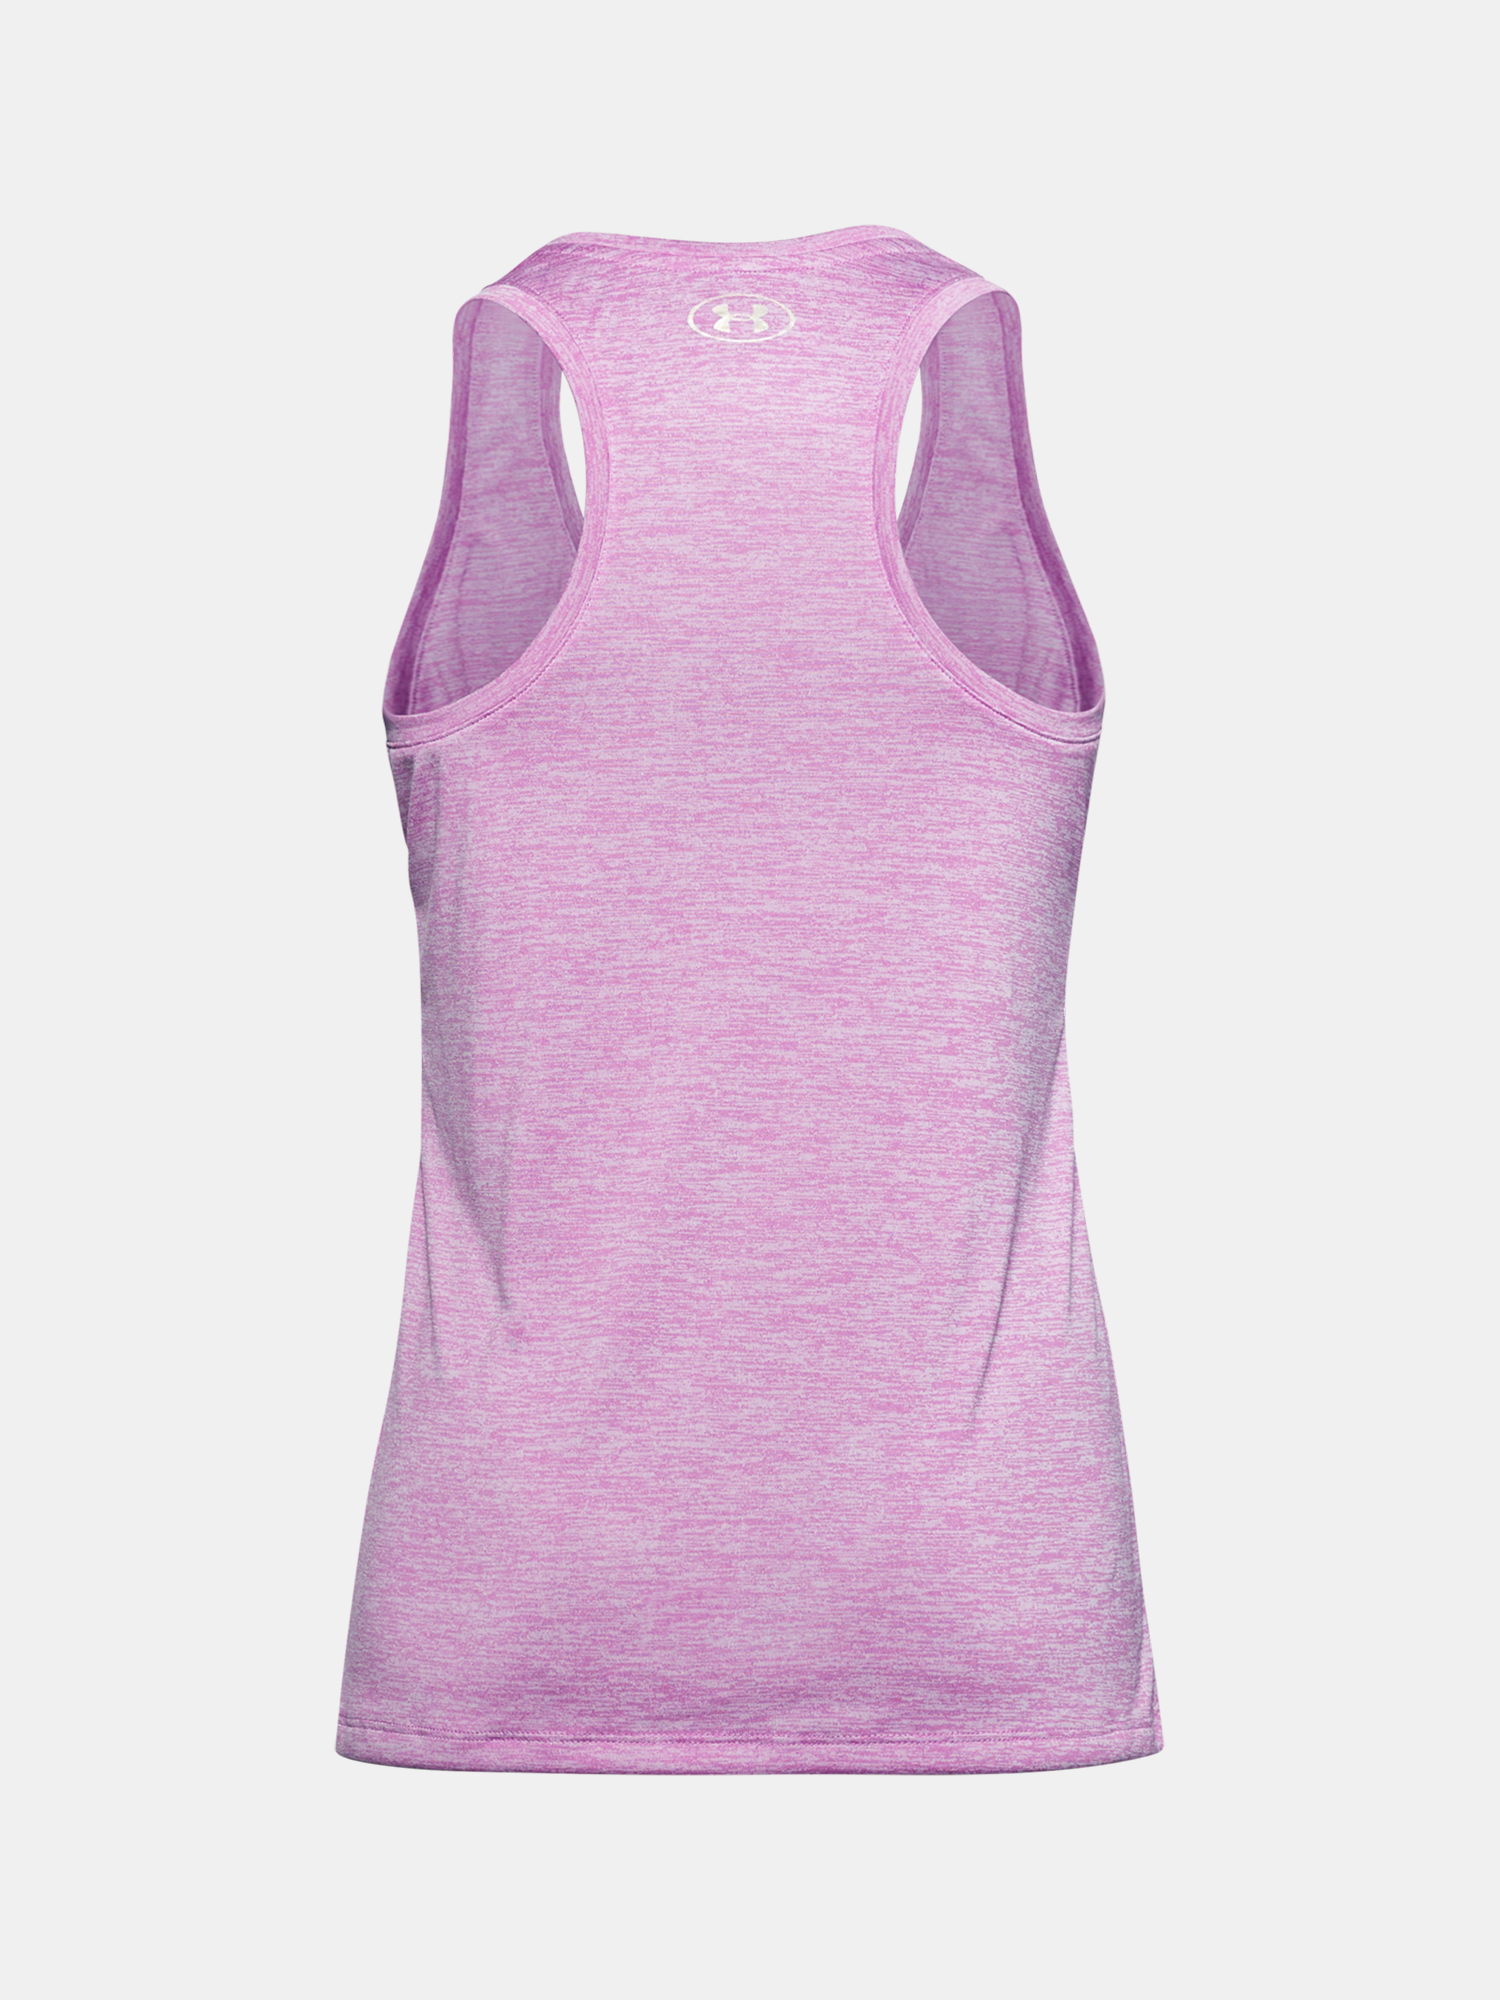 Tielko Under Armour Tech Tank - Twist-PPL (2)